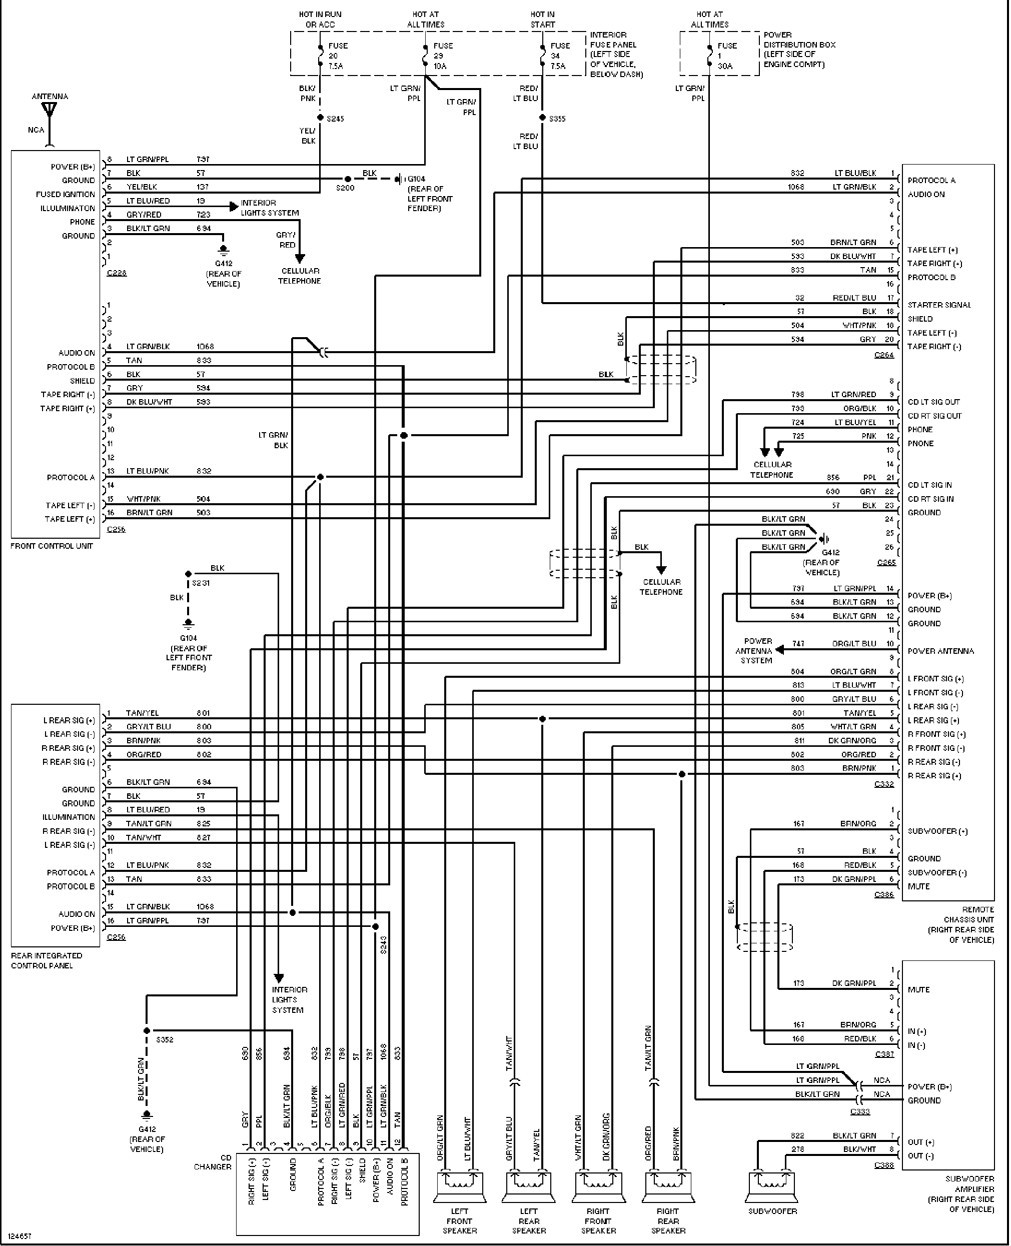 2005 Ford Explorer Stereo Wiring Diagram from mainetreasurechest.com